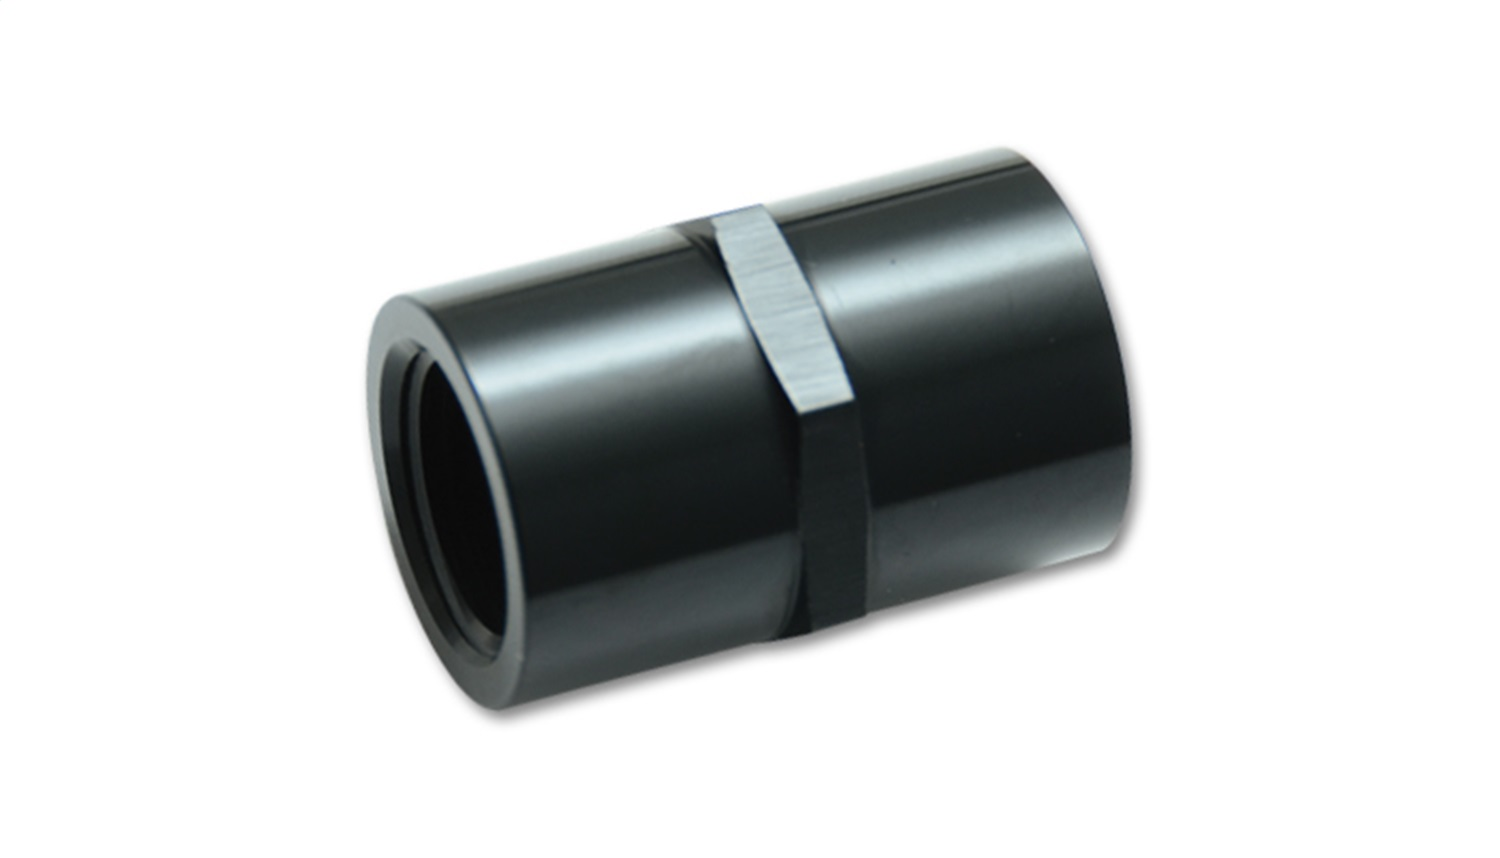 Vibrant Performance 10385 Female Pipe Thread Coupler Fitting